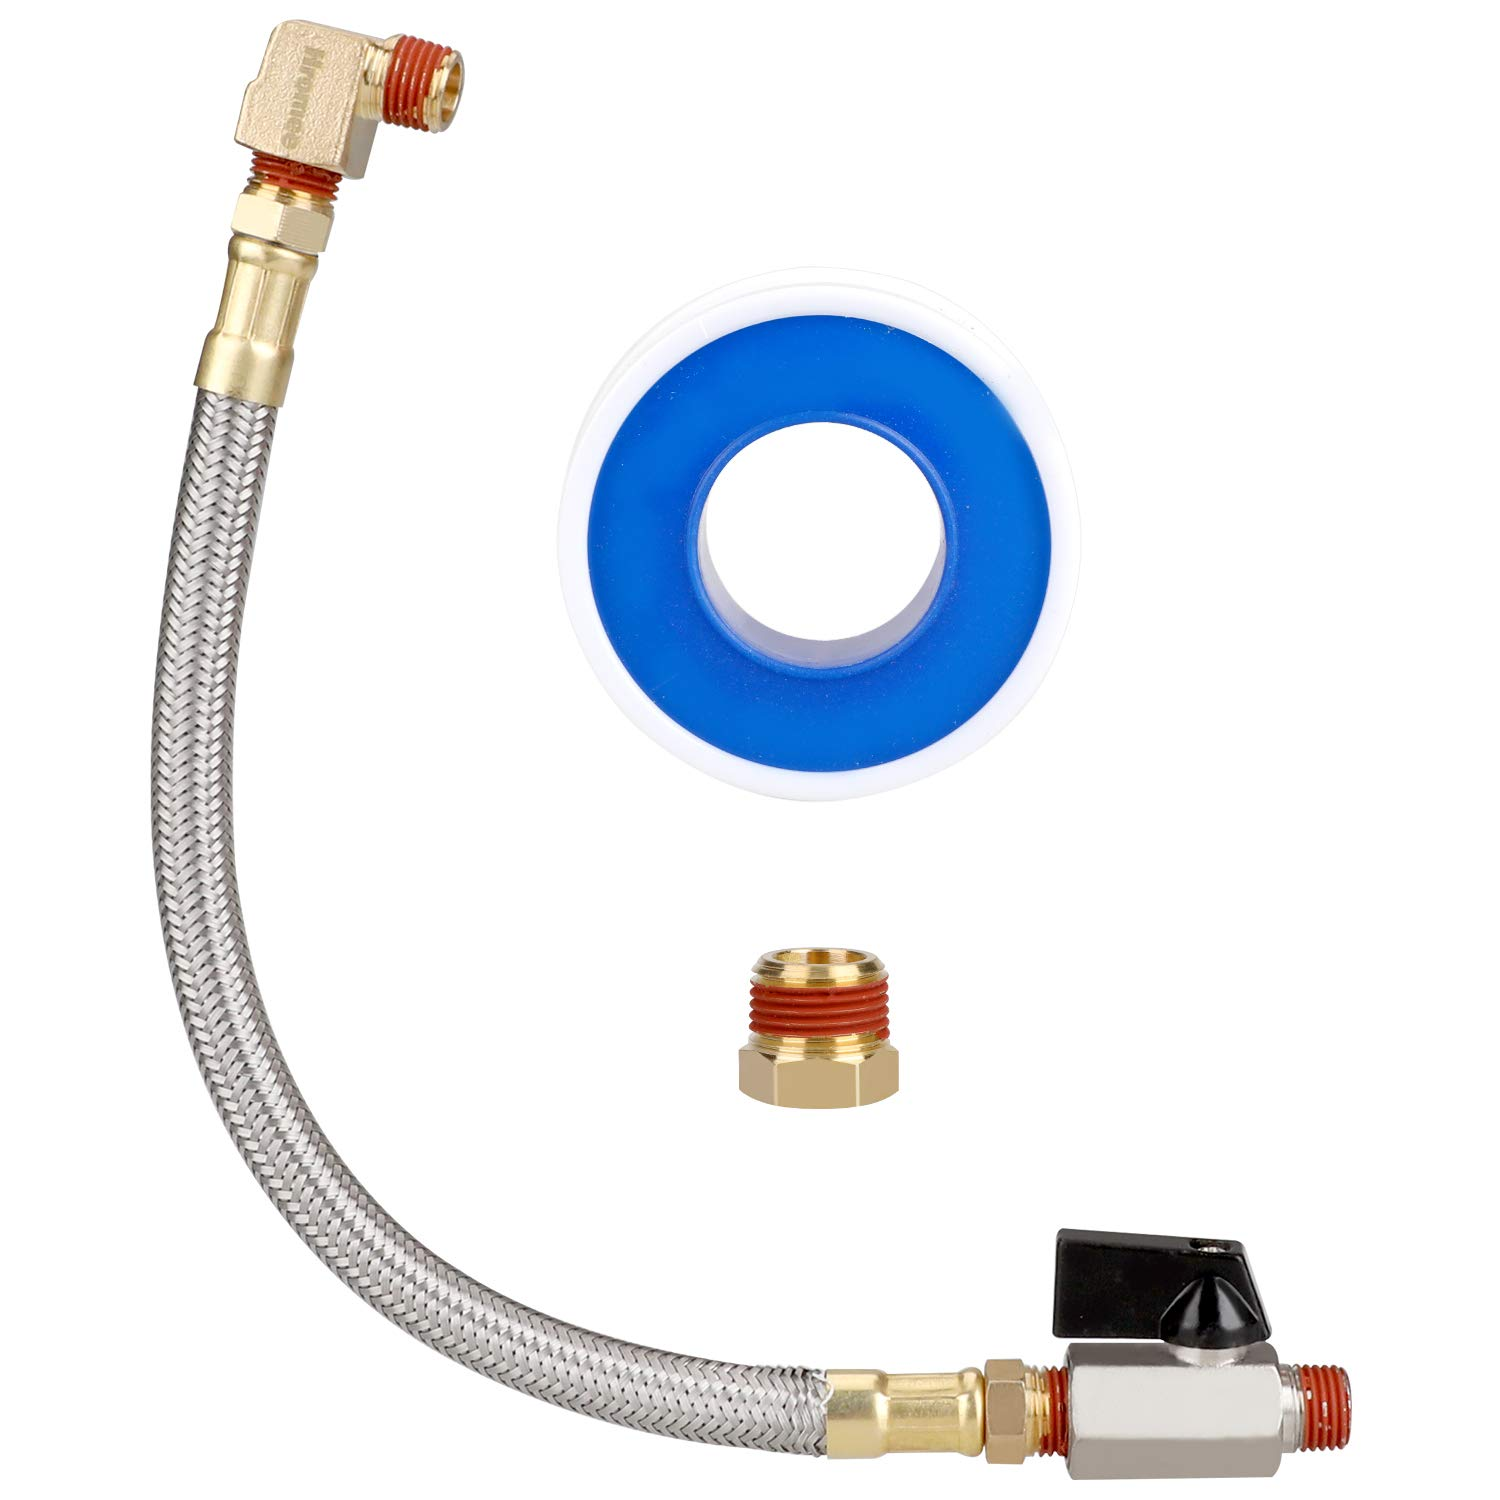 Hromee Extended Tank Drain Assembly Kit with 10 Inch Braided Steel Hose 1/4 Inch Drain Valve and Elbow Fitting for Air Compressor